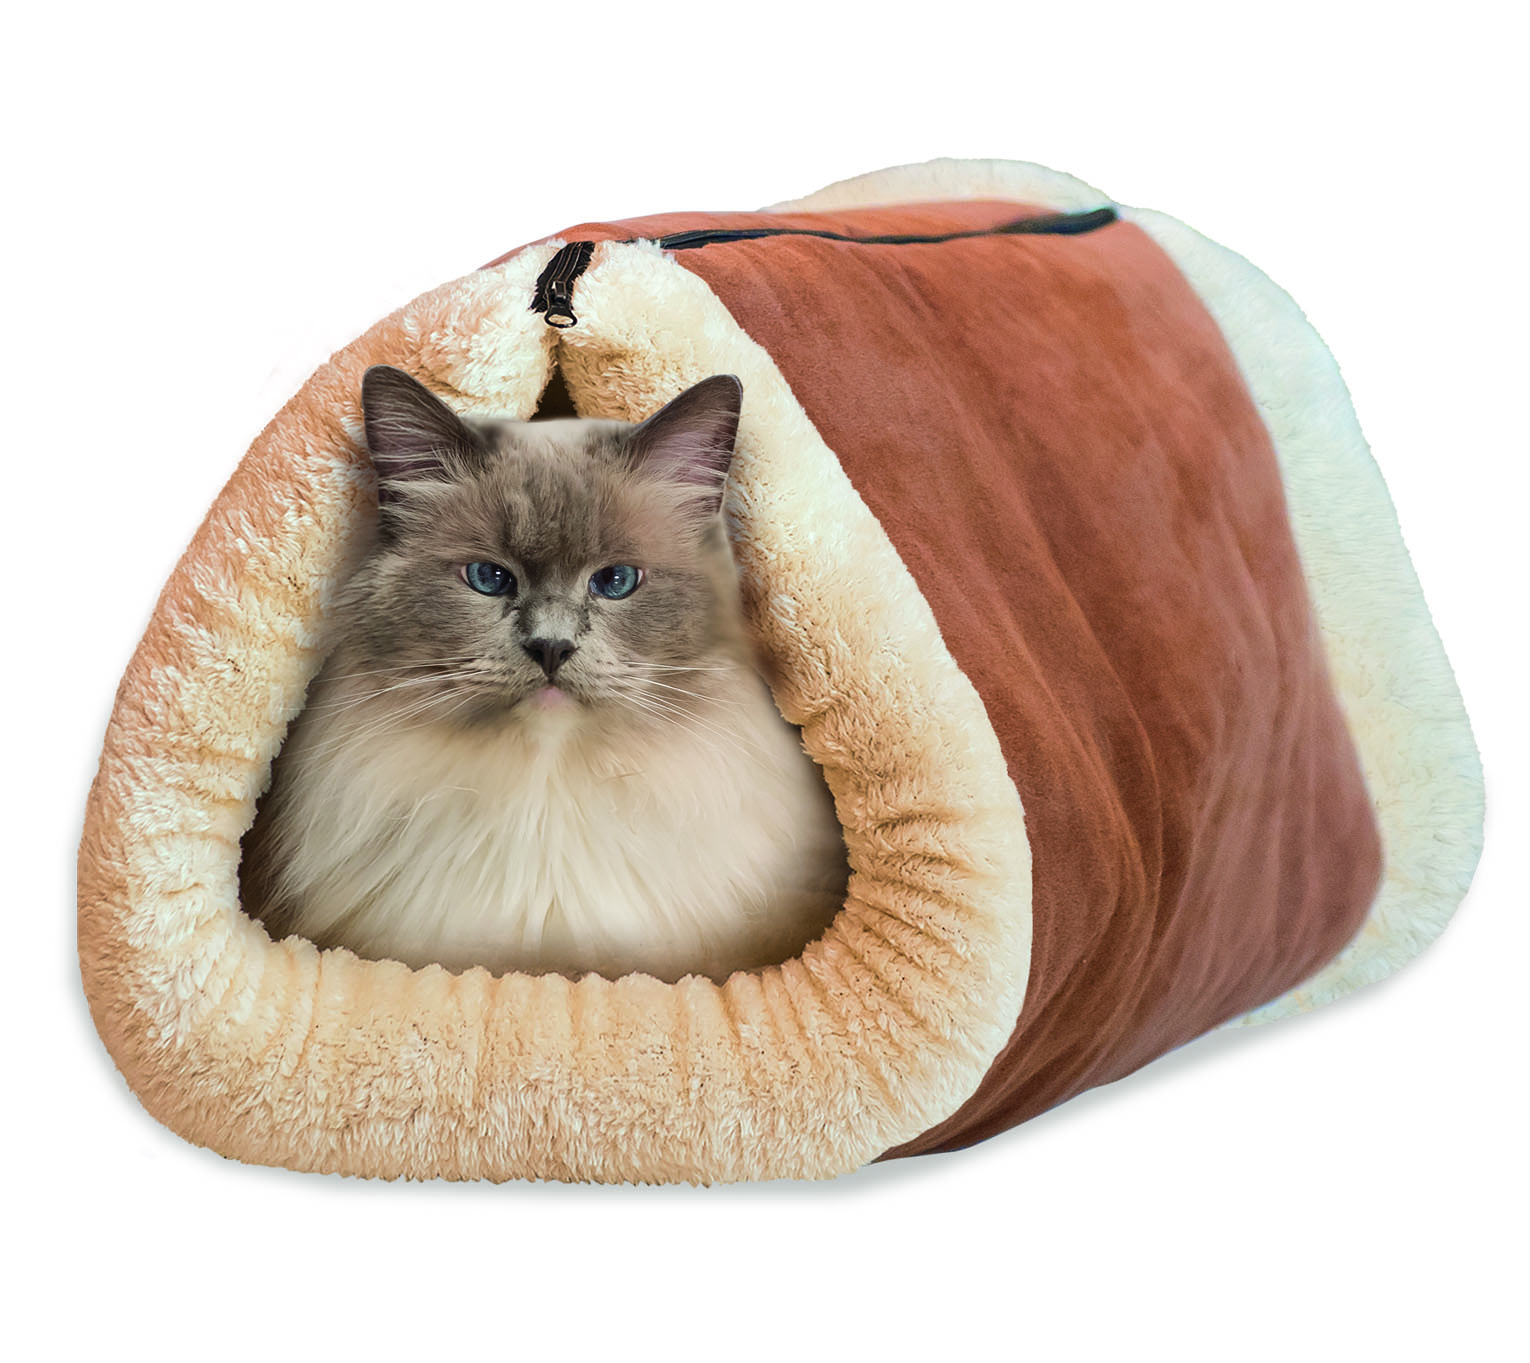 FA-TUNNEL-Cat-1-127-box.jpg